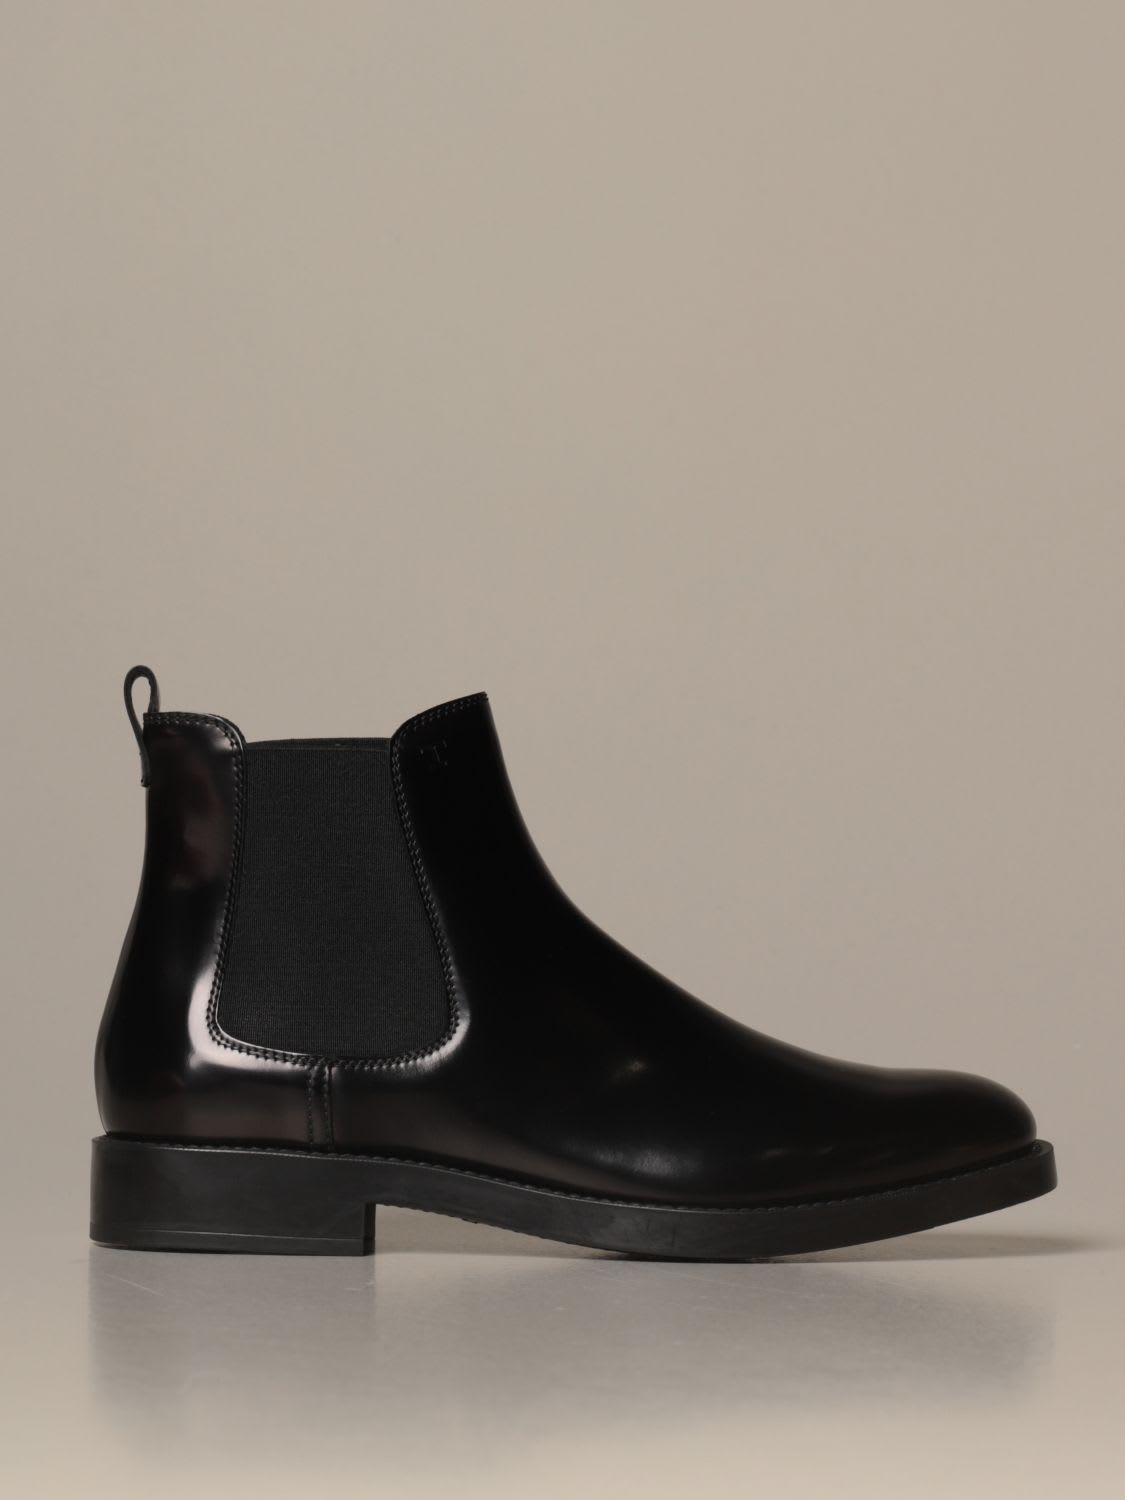 Tods Flat Booties Tods Ankle Boot In Brushed Leather